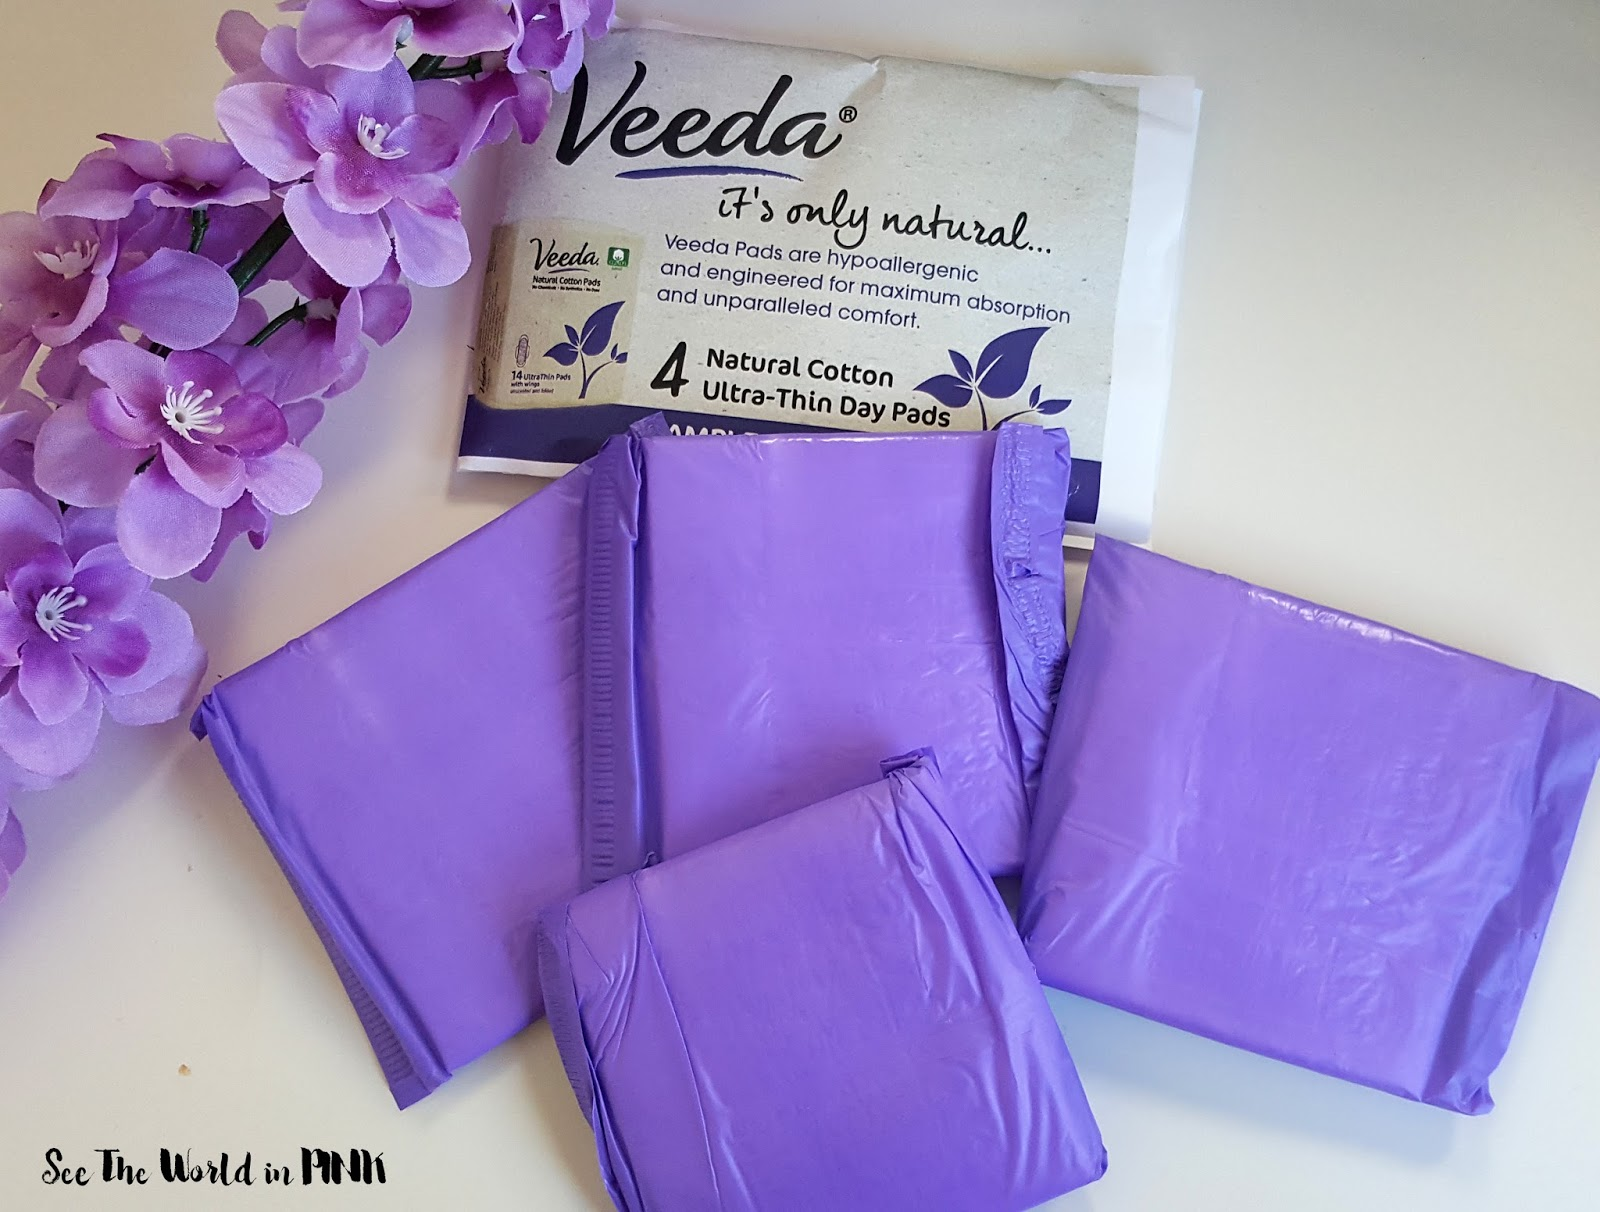 Selfcare Sunday - Veeda Natural Feminine Care Products